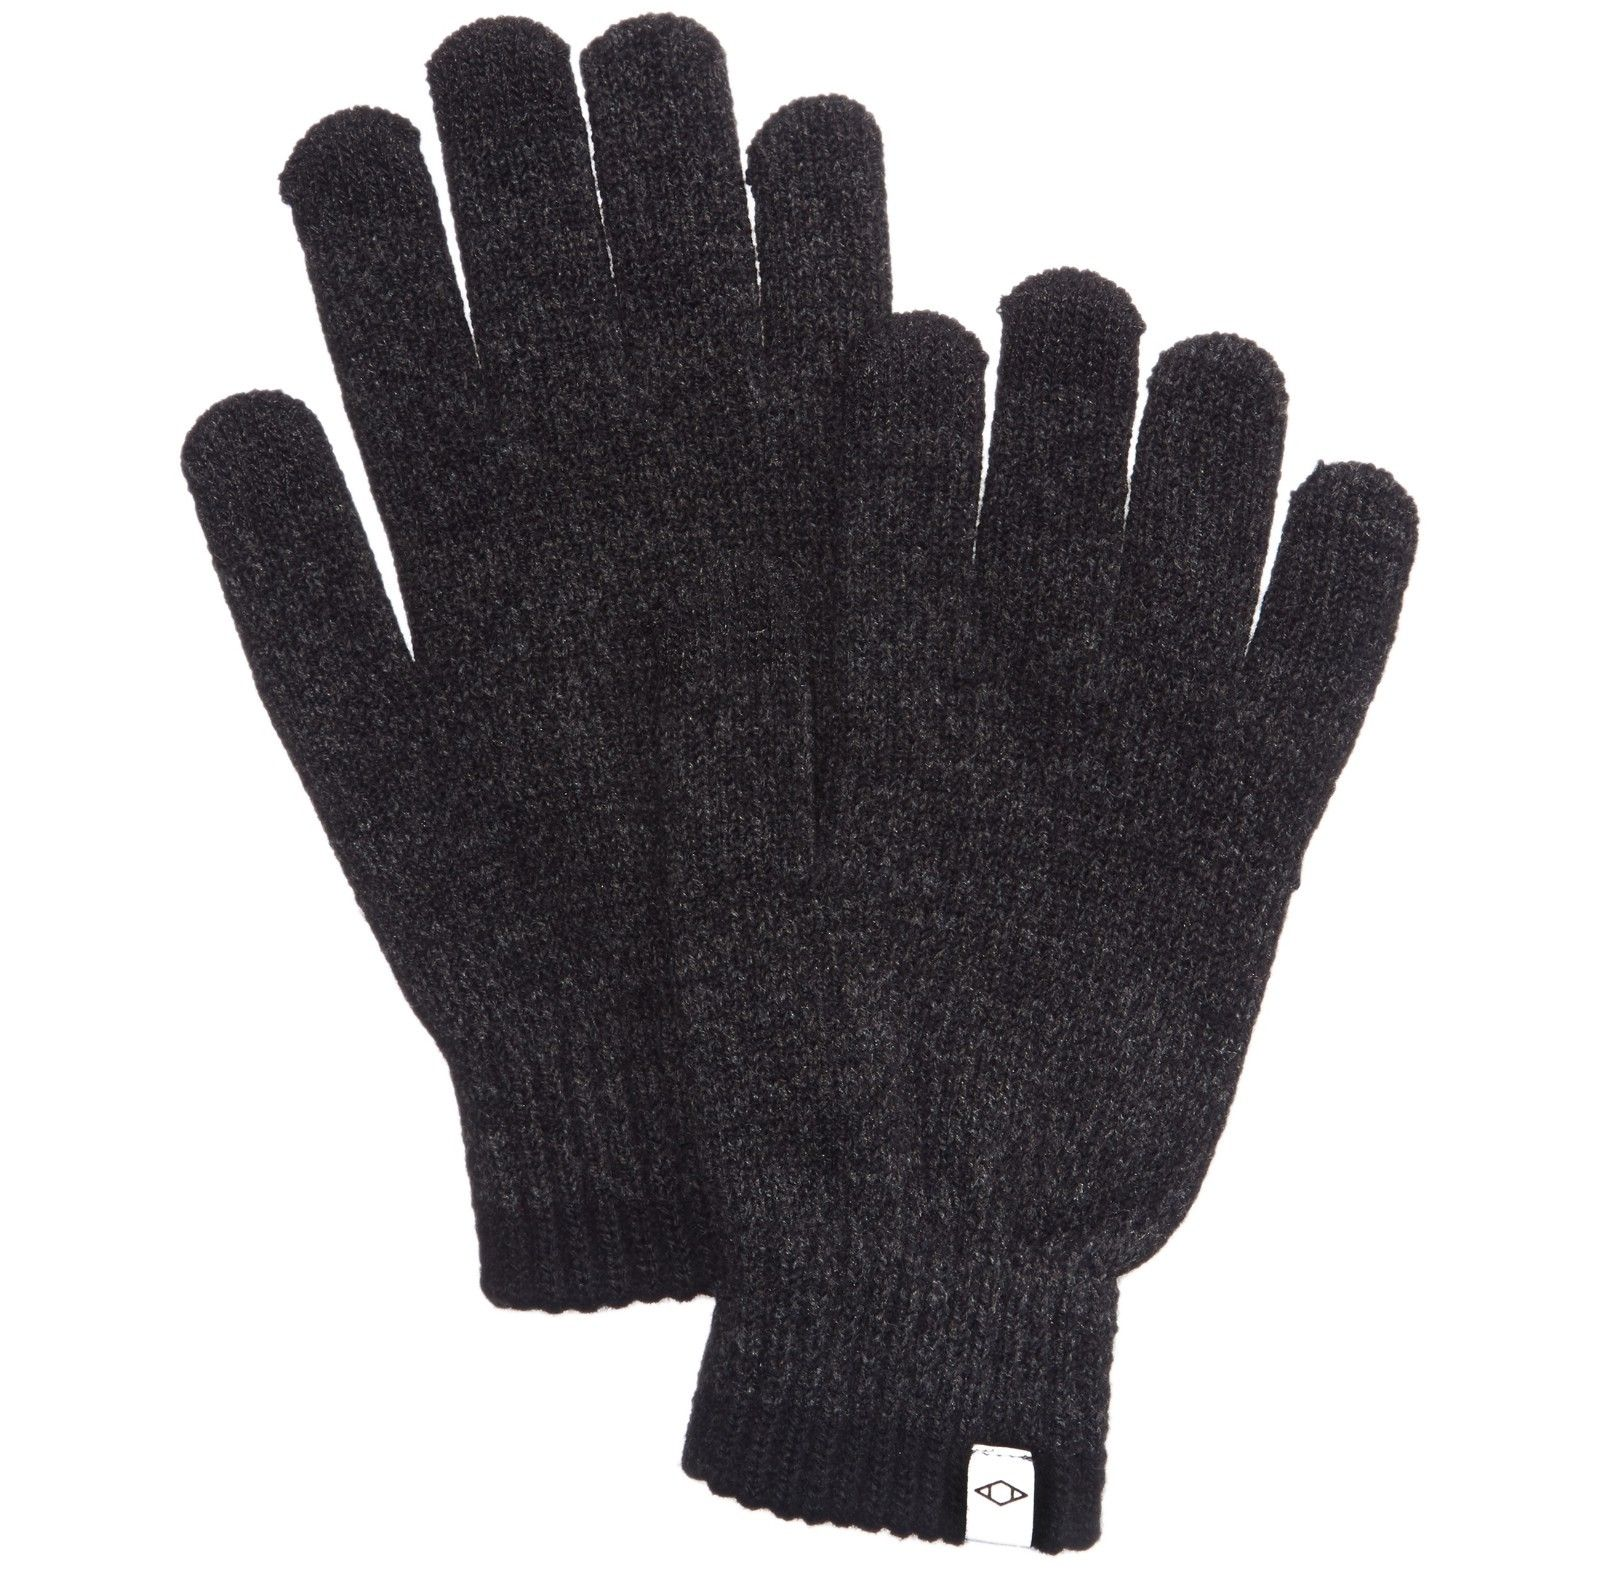 Alfani  Space-dyed Gloves Black Charcoal One Size